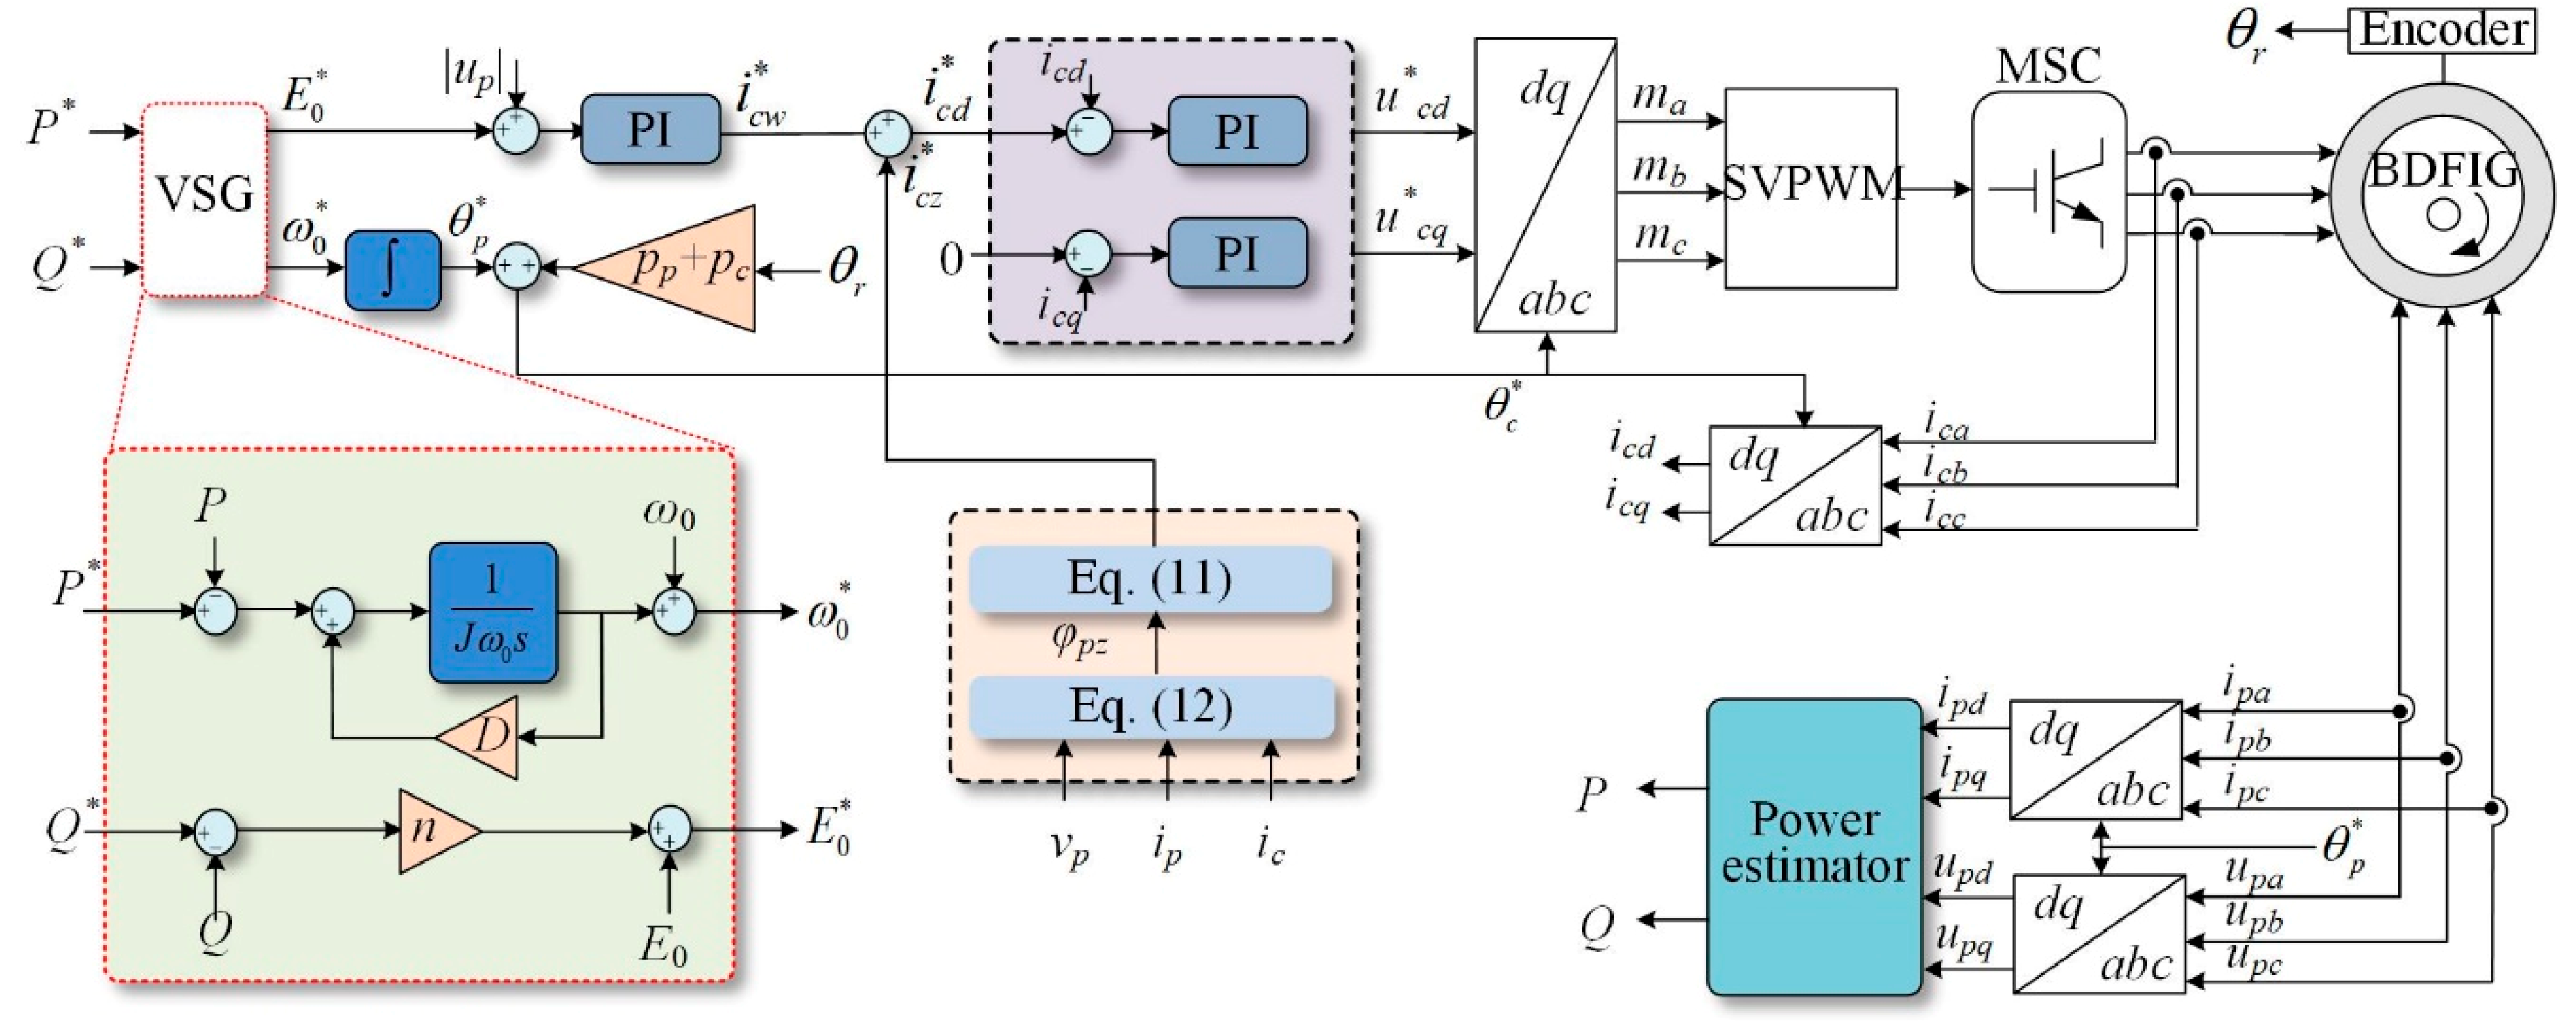 Energies | Free Full-Text | Virtual Synchronous Control Based on